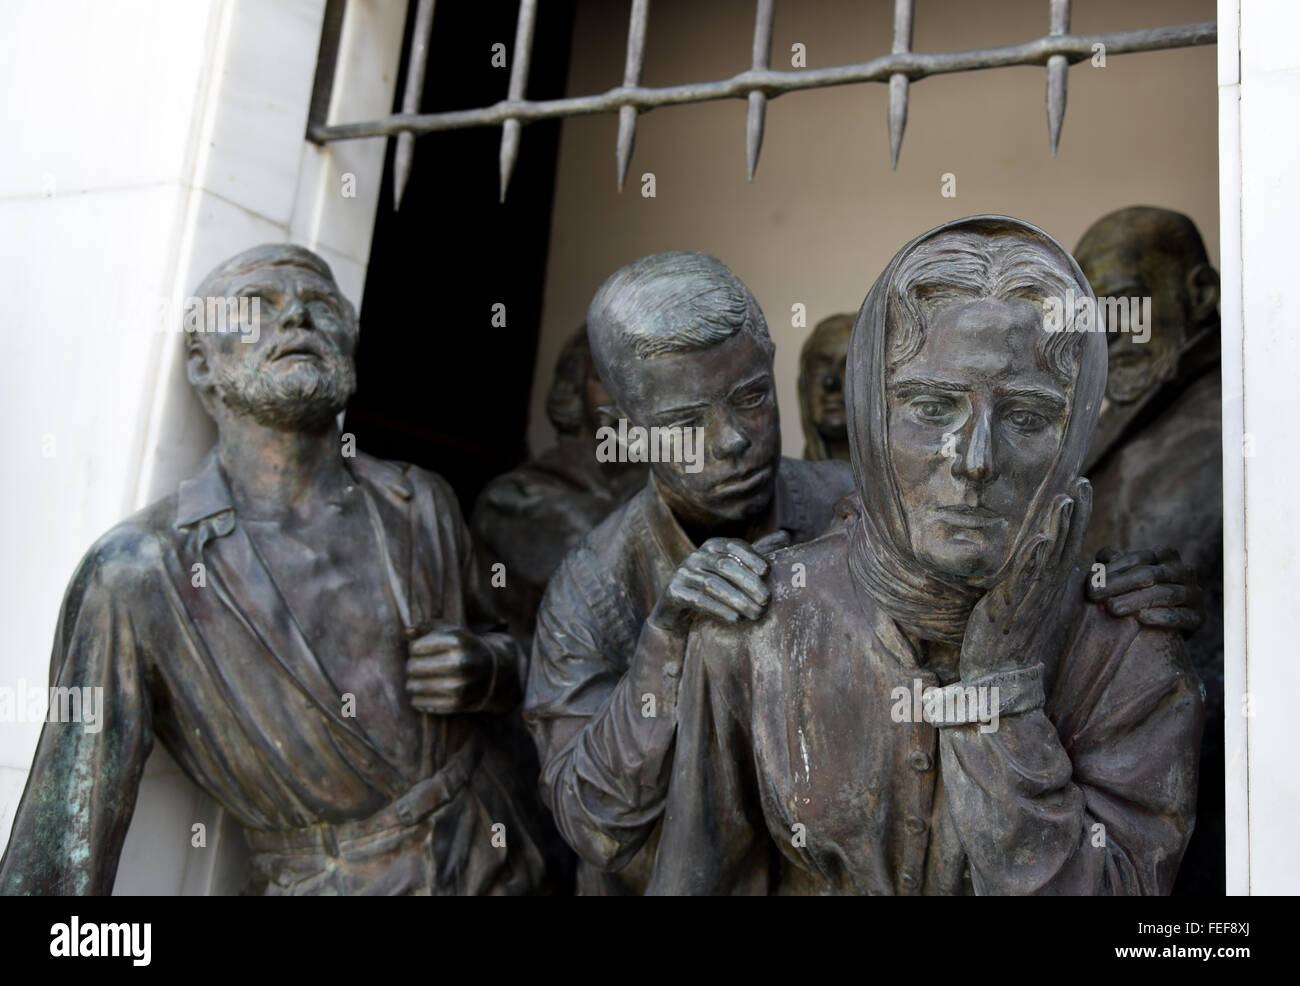 Bronze Statues on the liberty monument in the city of Nicosia in Cyprus. - Stock Image